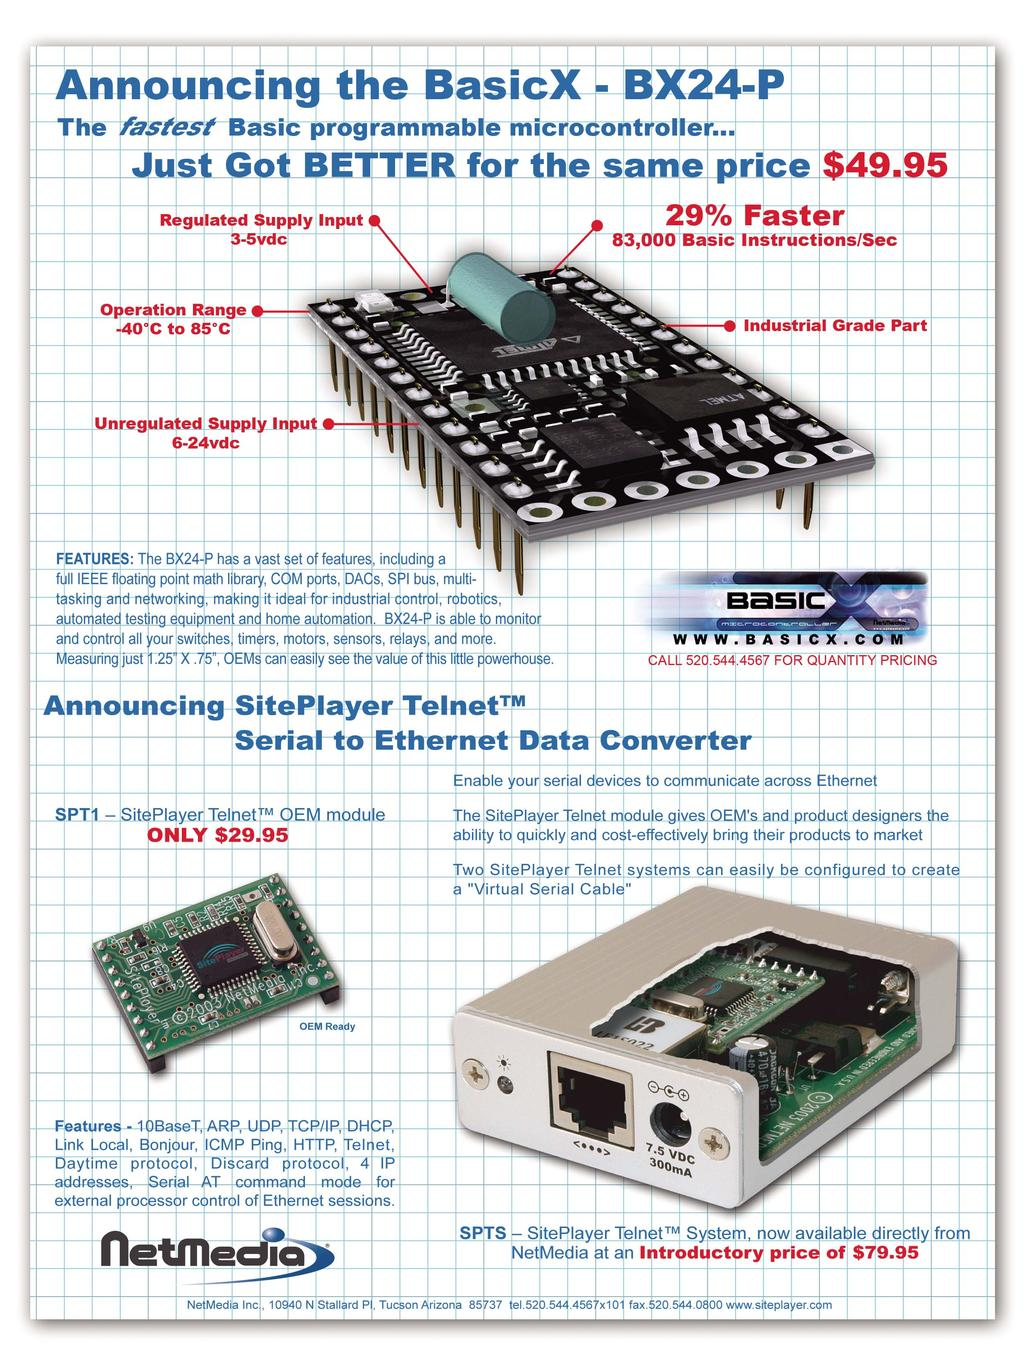 Vol 4 No 5 Servo Magazine Super Robonova Driving Stepper Motors Find More Information Of Wiring A Dc Motor By Handyboardcom Here Coverinside